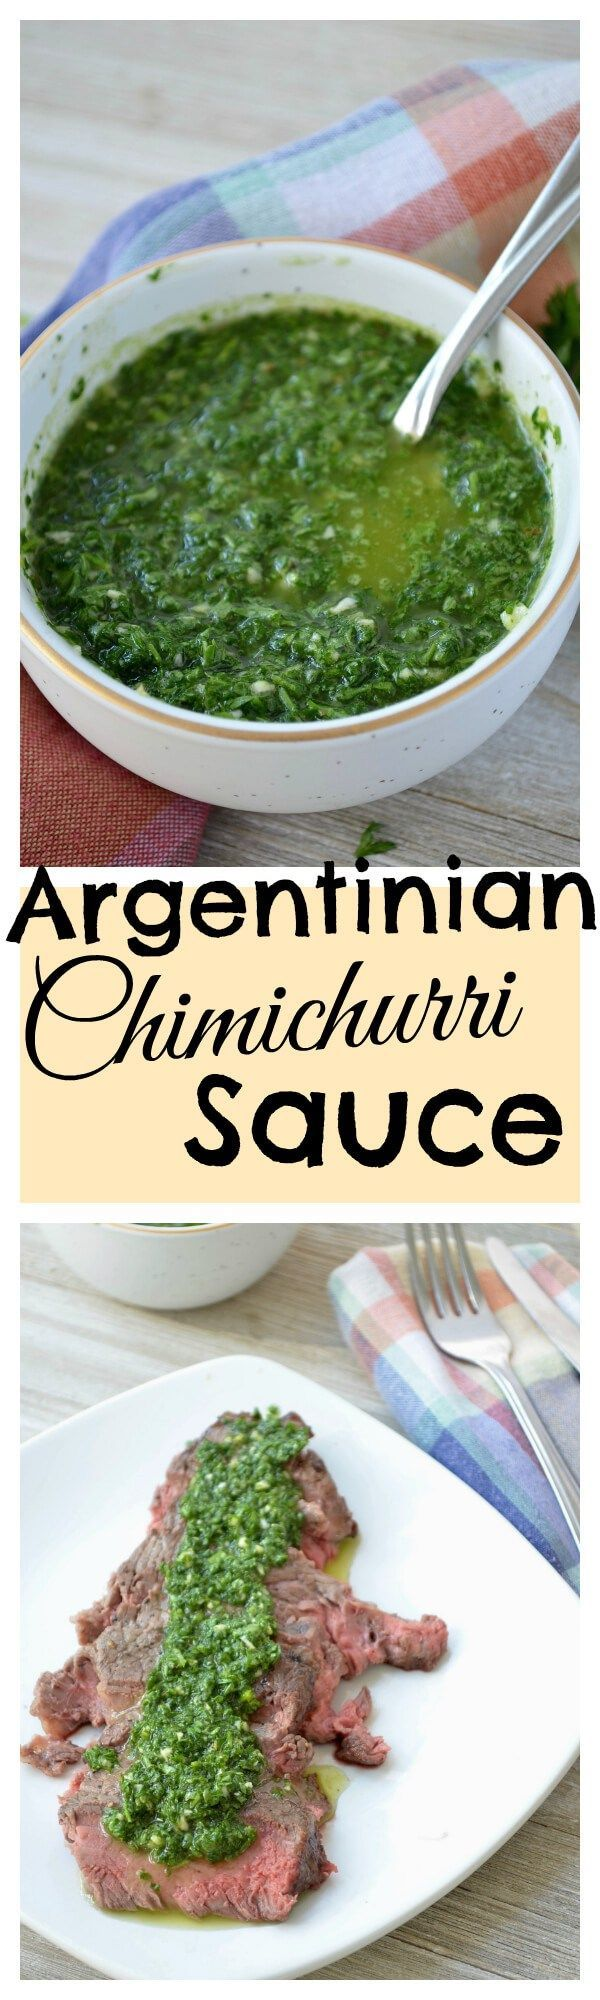 Chimichurri sauce argentina lyndsays travel kitchen chimichurri sauce argentina lyndsays travel kitchen beeffoodrecipes forumfinder Image collections